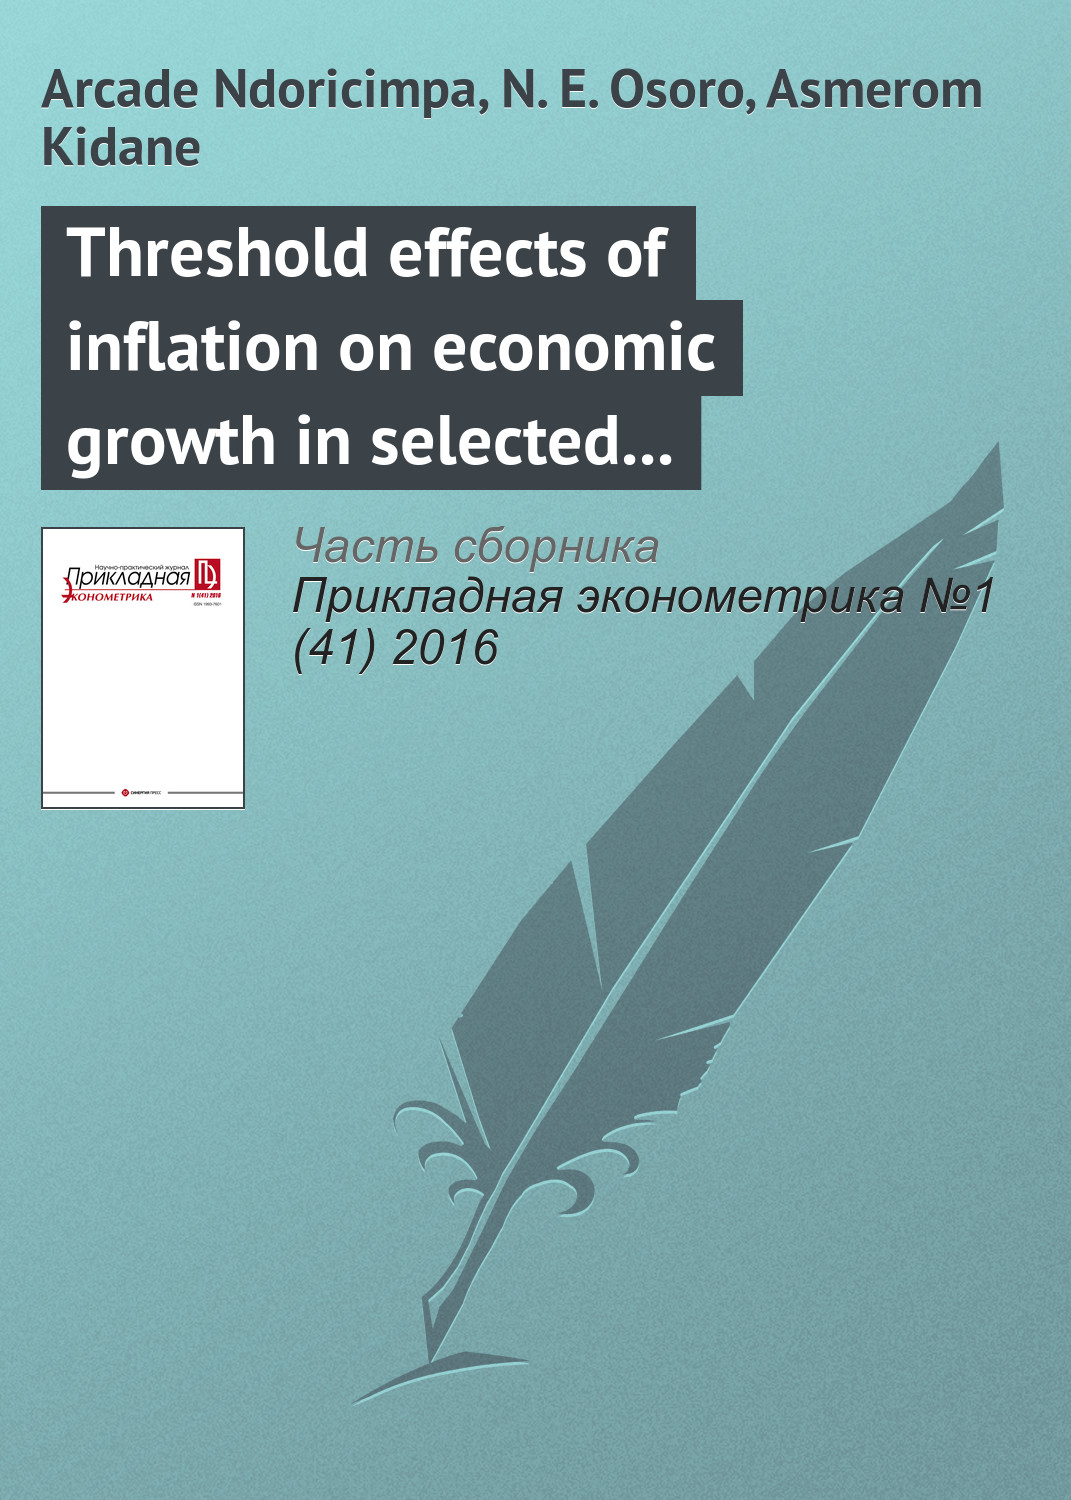 Arcade Ndoricimpa Threshold effects of inflation on economic growth in selected African regional economic communities: Evidence from a dynamic panel threshold modeling helgi erilaid aja jälg kivis prantsusmaa